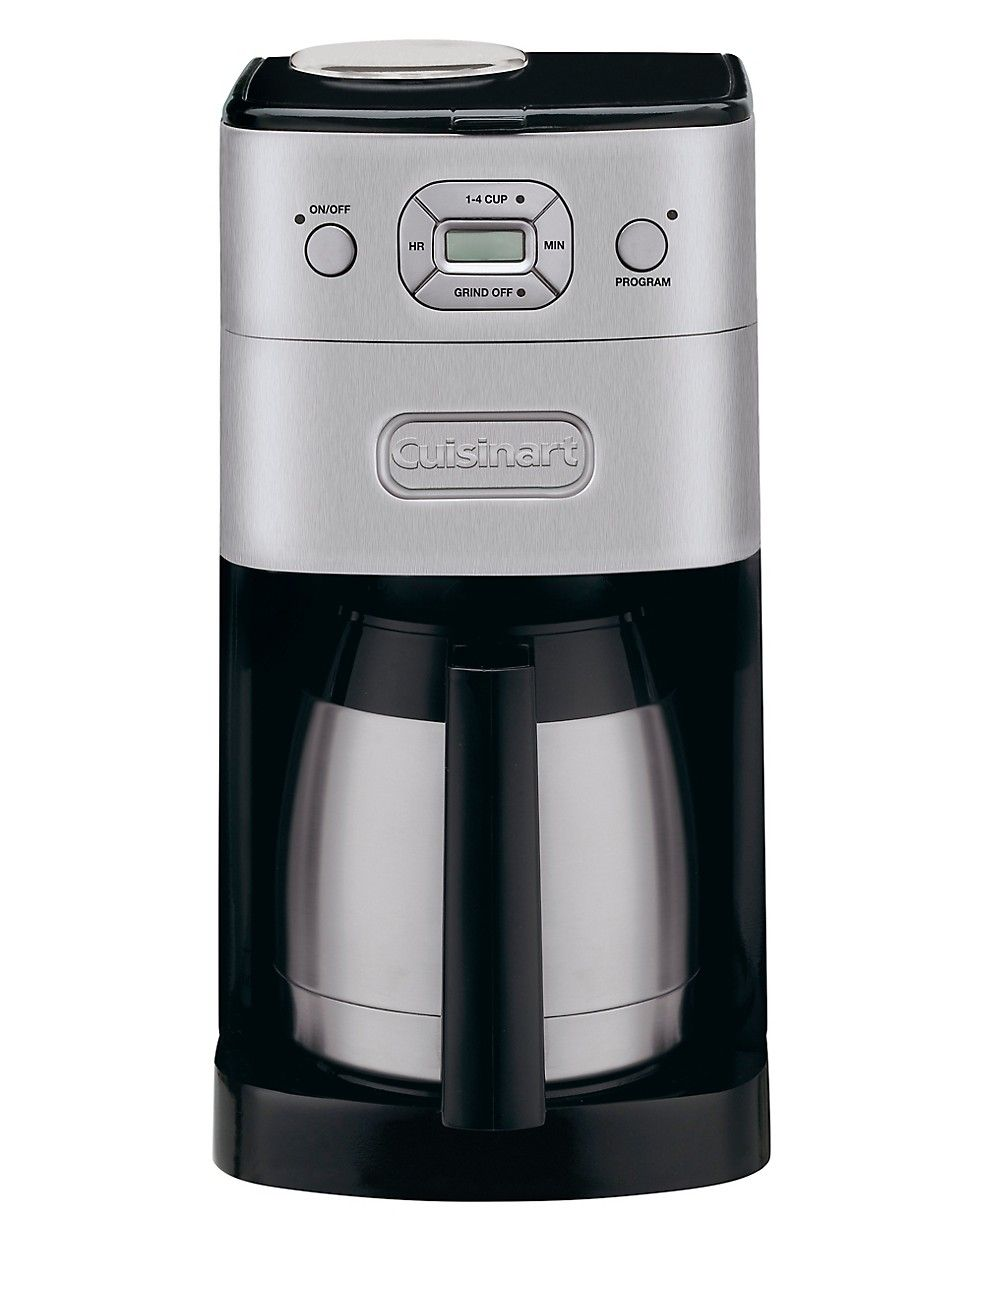 Cuisinart Grind And Brew Tm Thermal 10 Cup Coffeemaker Thebay In 2020 Thermal Coffee Maker Cuisinart Coffee Maker Best Coffee Maker